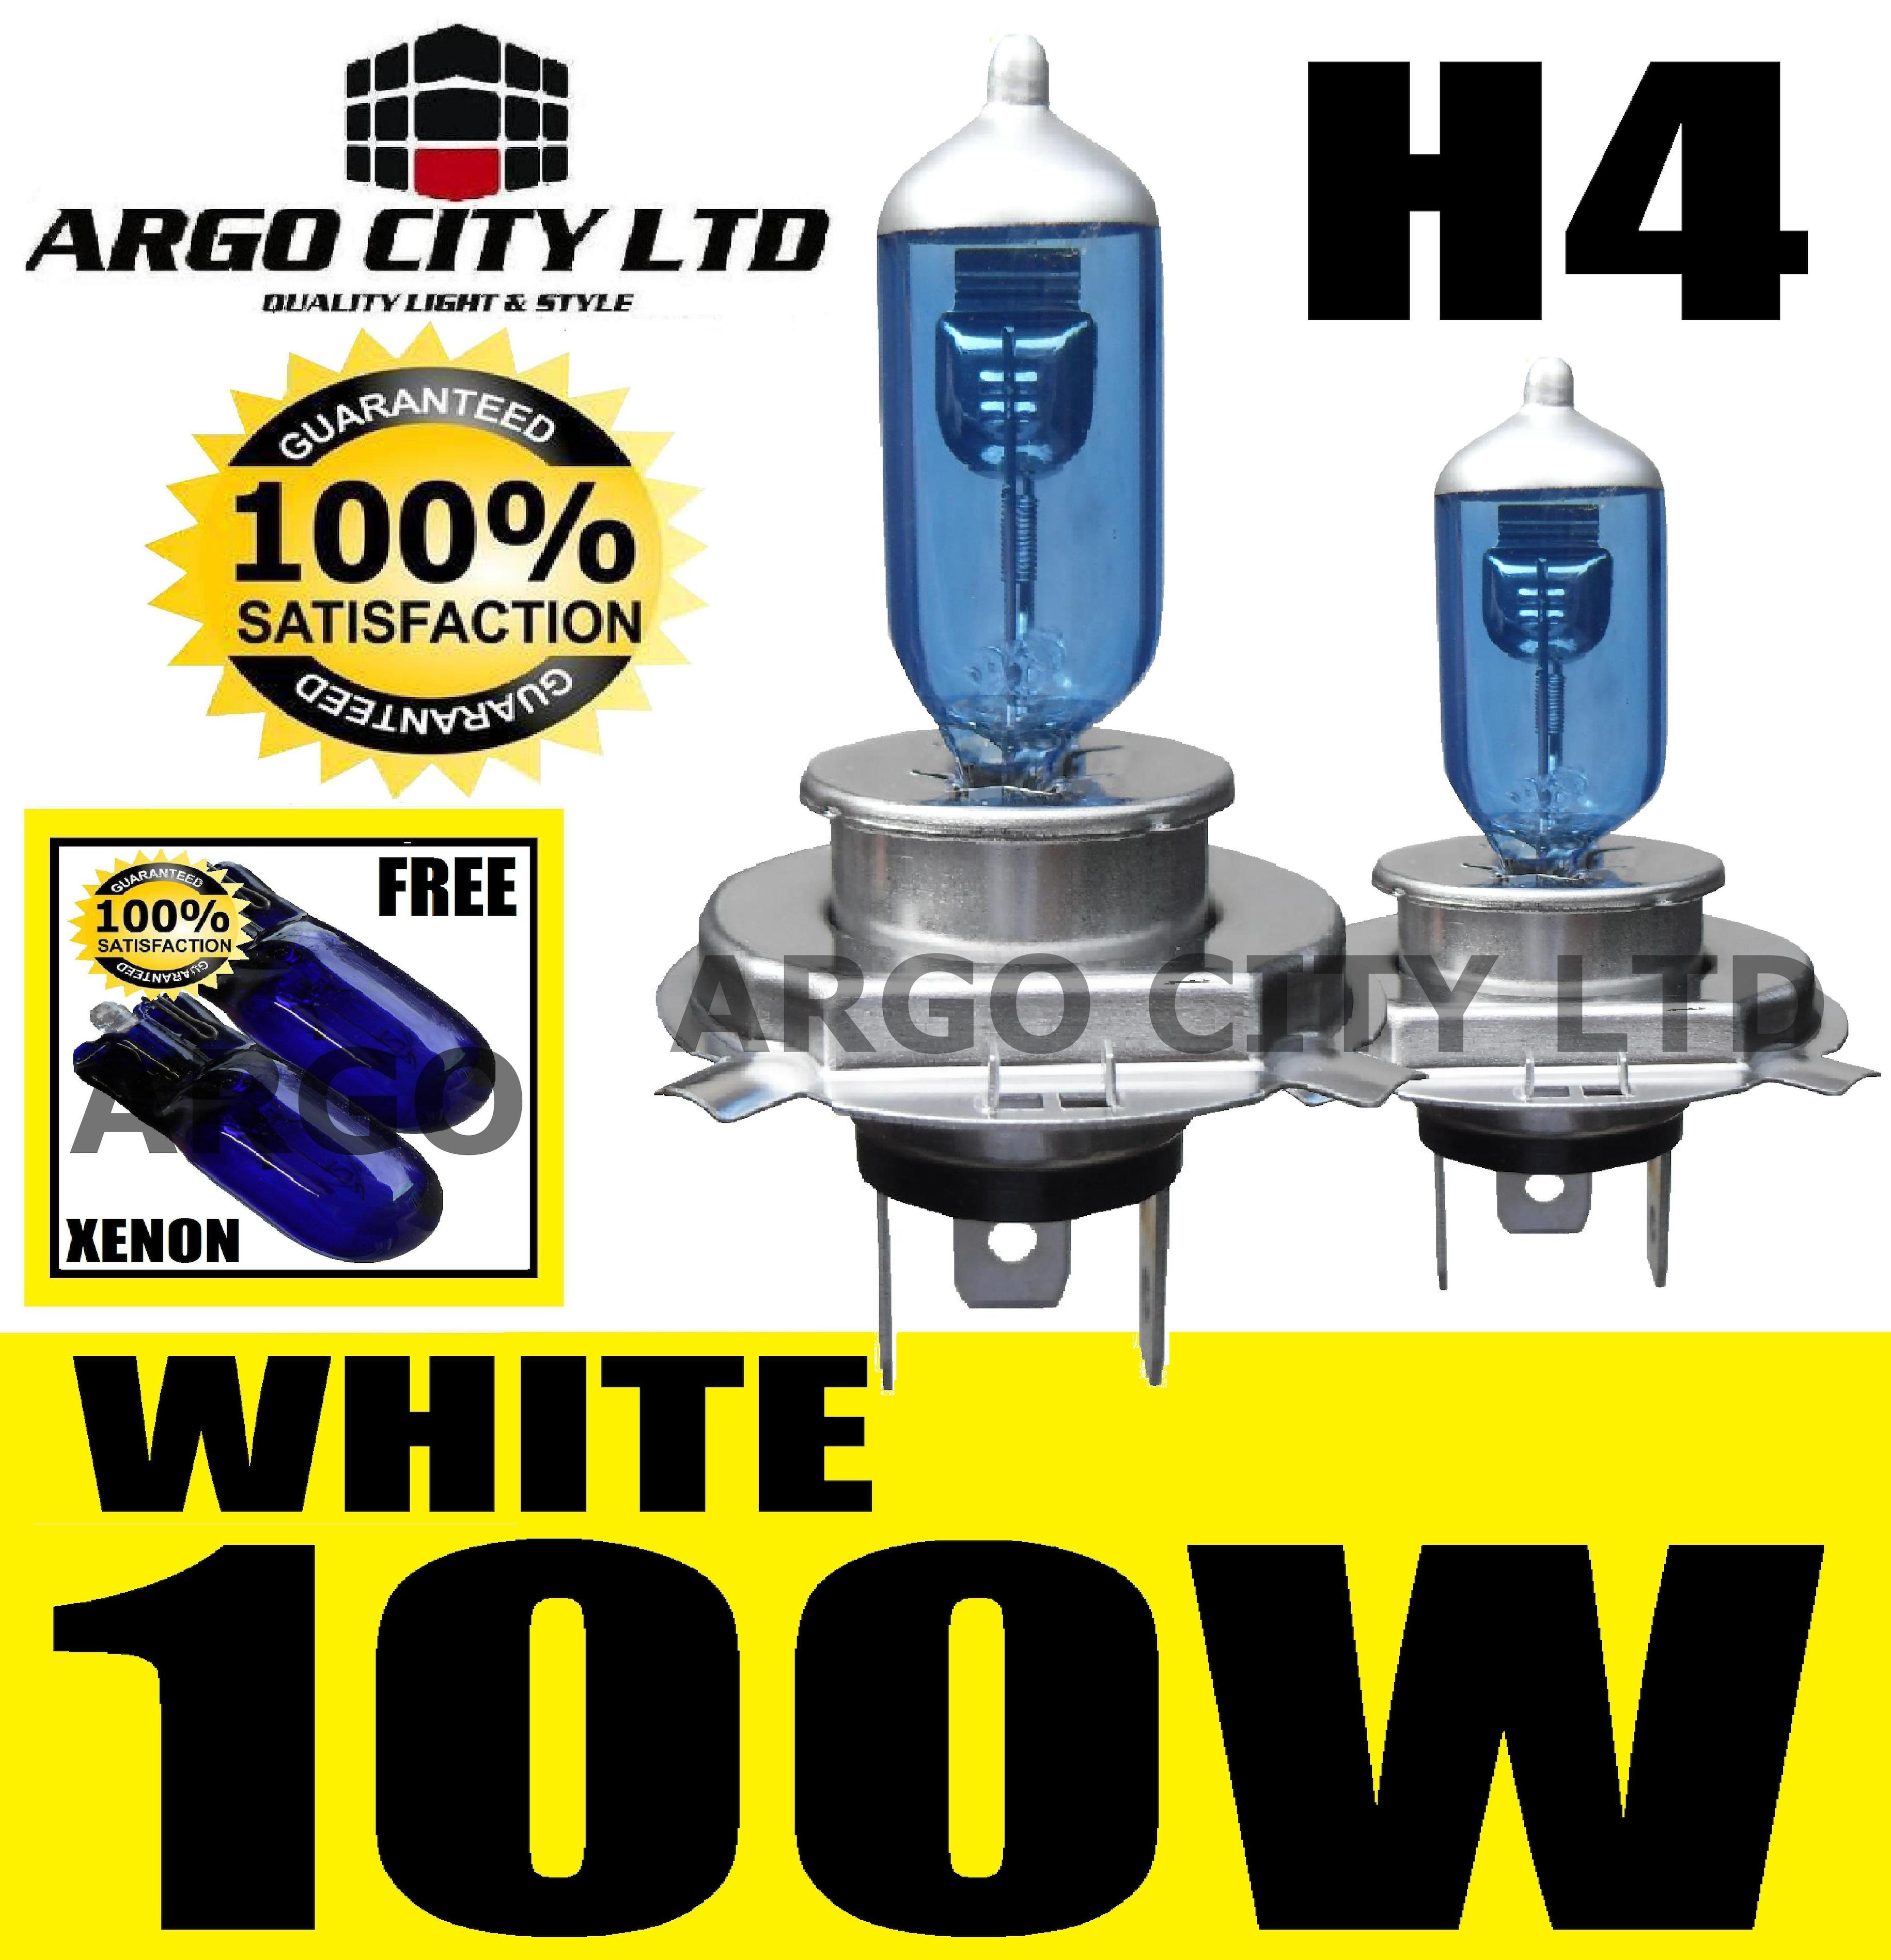 H4 XENON WHITE 100W 472 HEADLIGHT BULBS JEEP CHEROKEE KJ LIBERTY